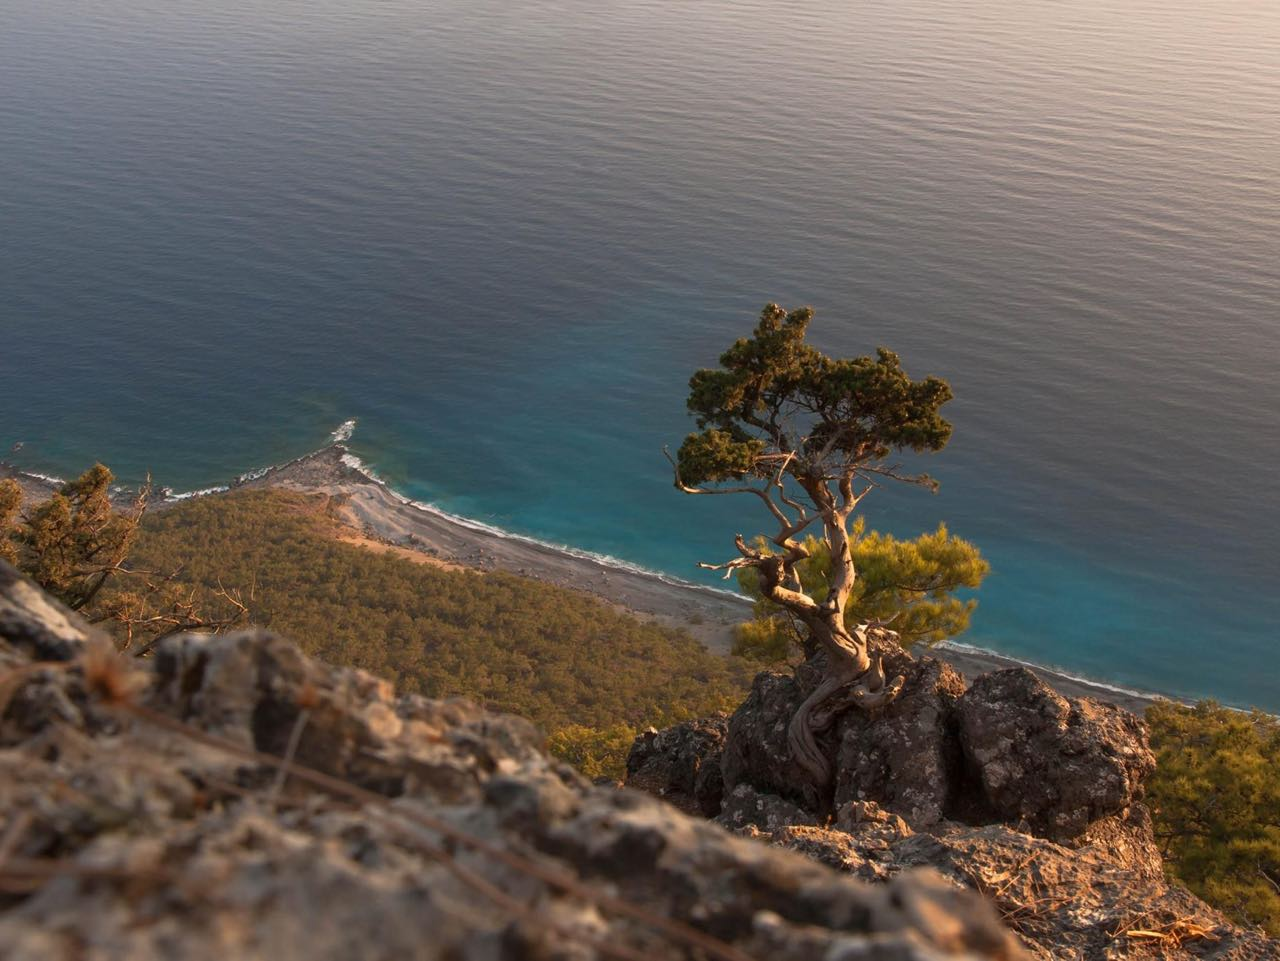 tailor made tours crete, tailor made tours chania crete, tailor made tours rethymno crete, tailor made tours heraklion crete, tailor made tours elounda village, traditional villages, culture history tours, social tours, historical tours, samaria gorge, chania town